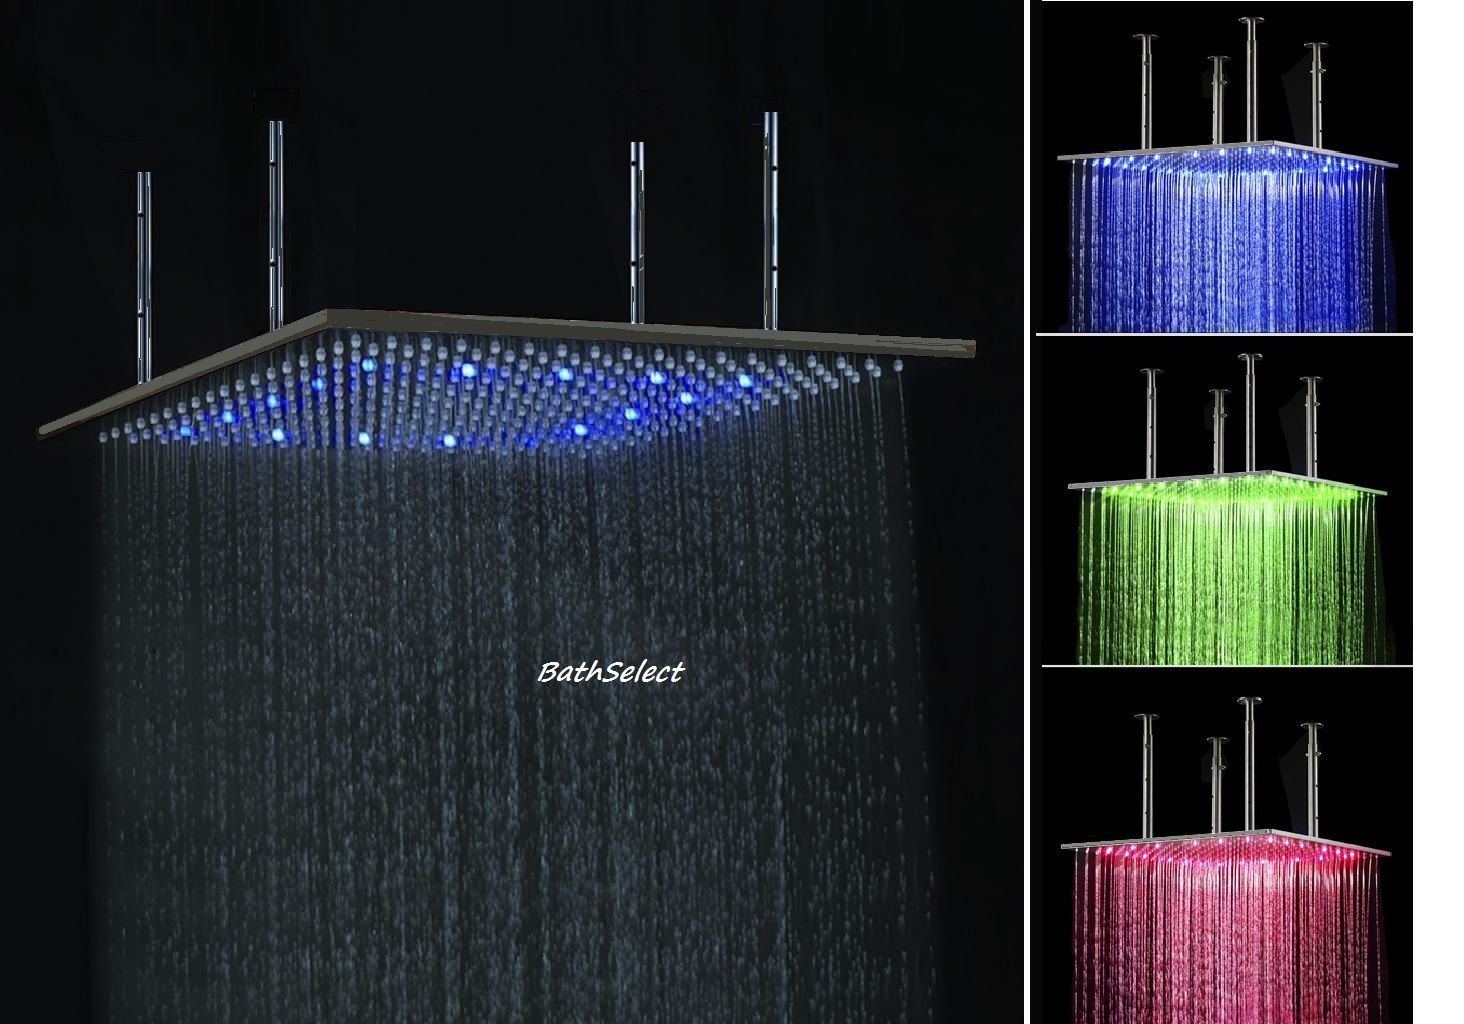 Turn On The Fun In Your Shower Just By Turning On The Water The Led Lights Will Automatically Light Up And Rain Shower Head Shower Heads Rainfall Shower Head